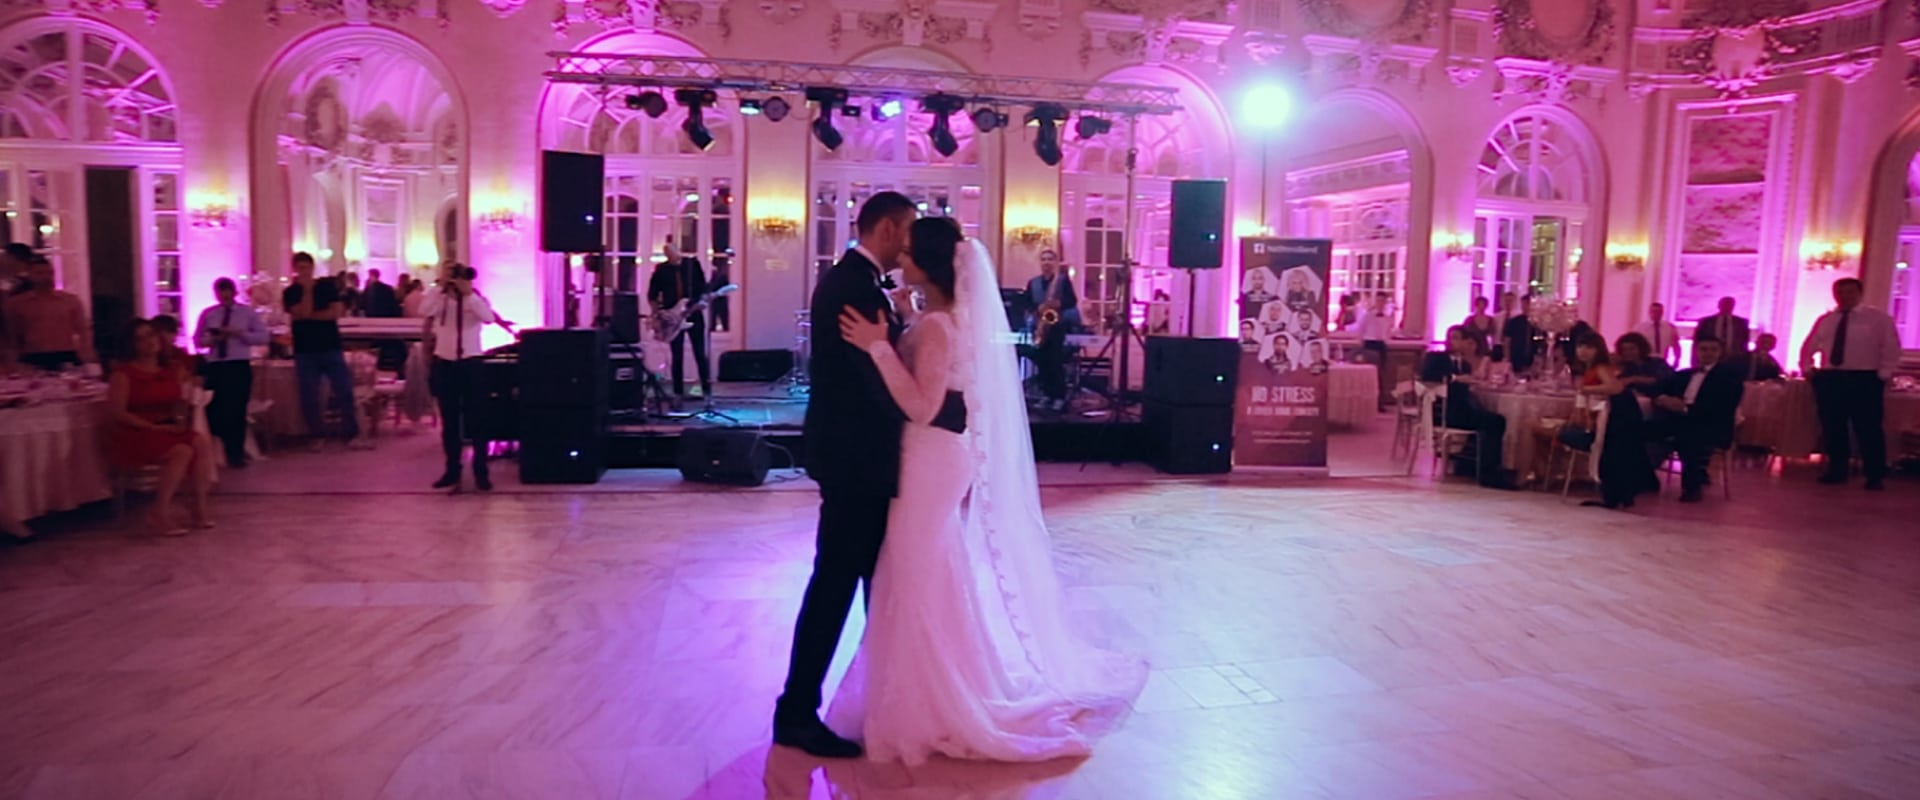 First dance in Casino Sinaia during a wedding